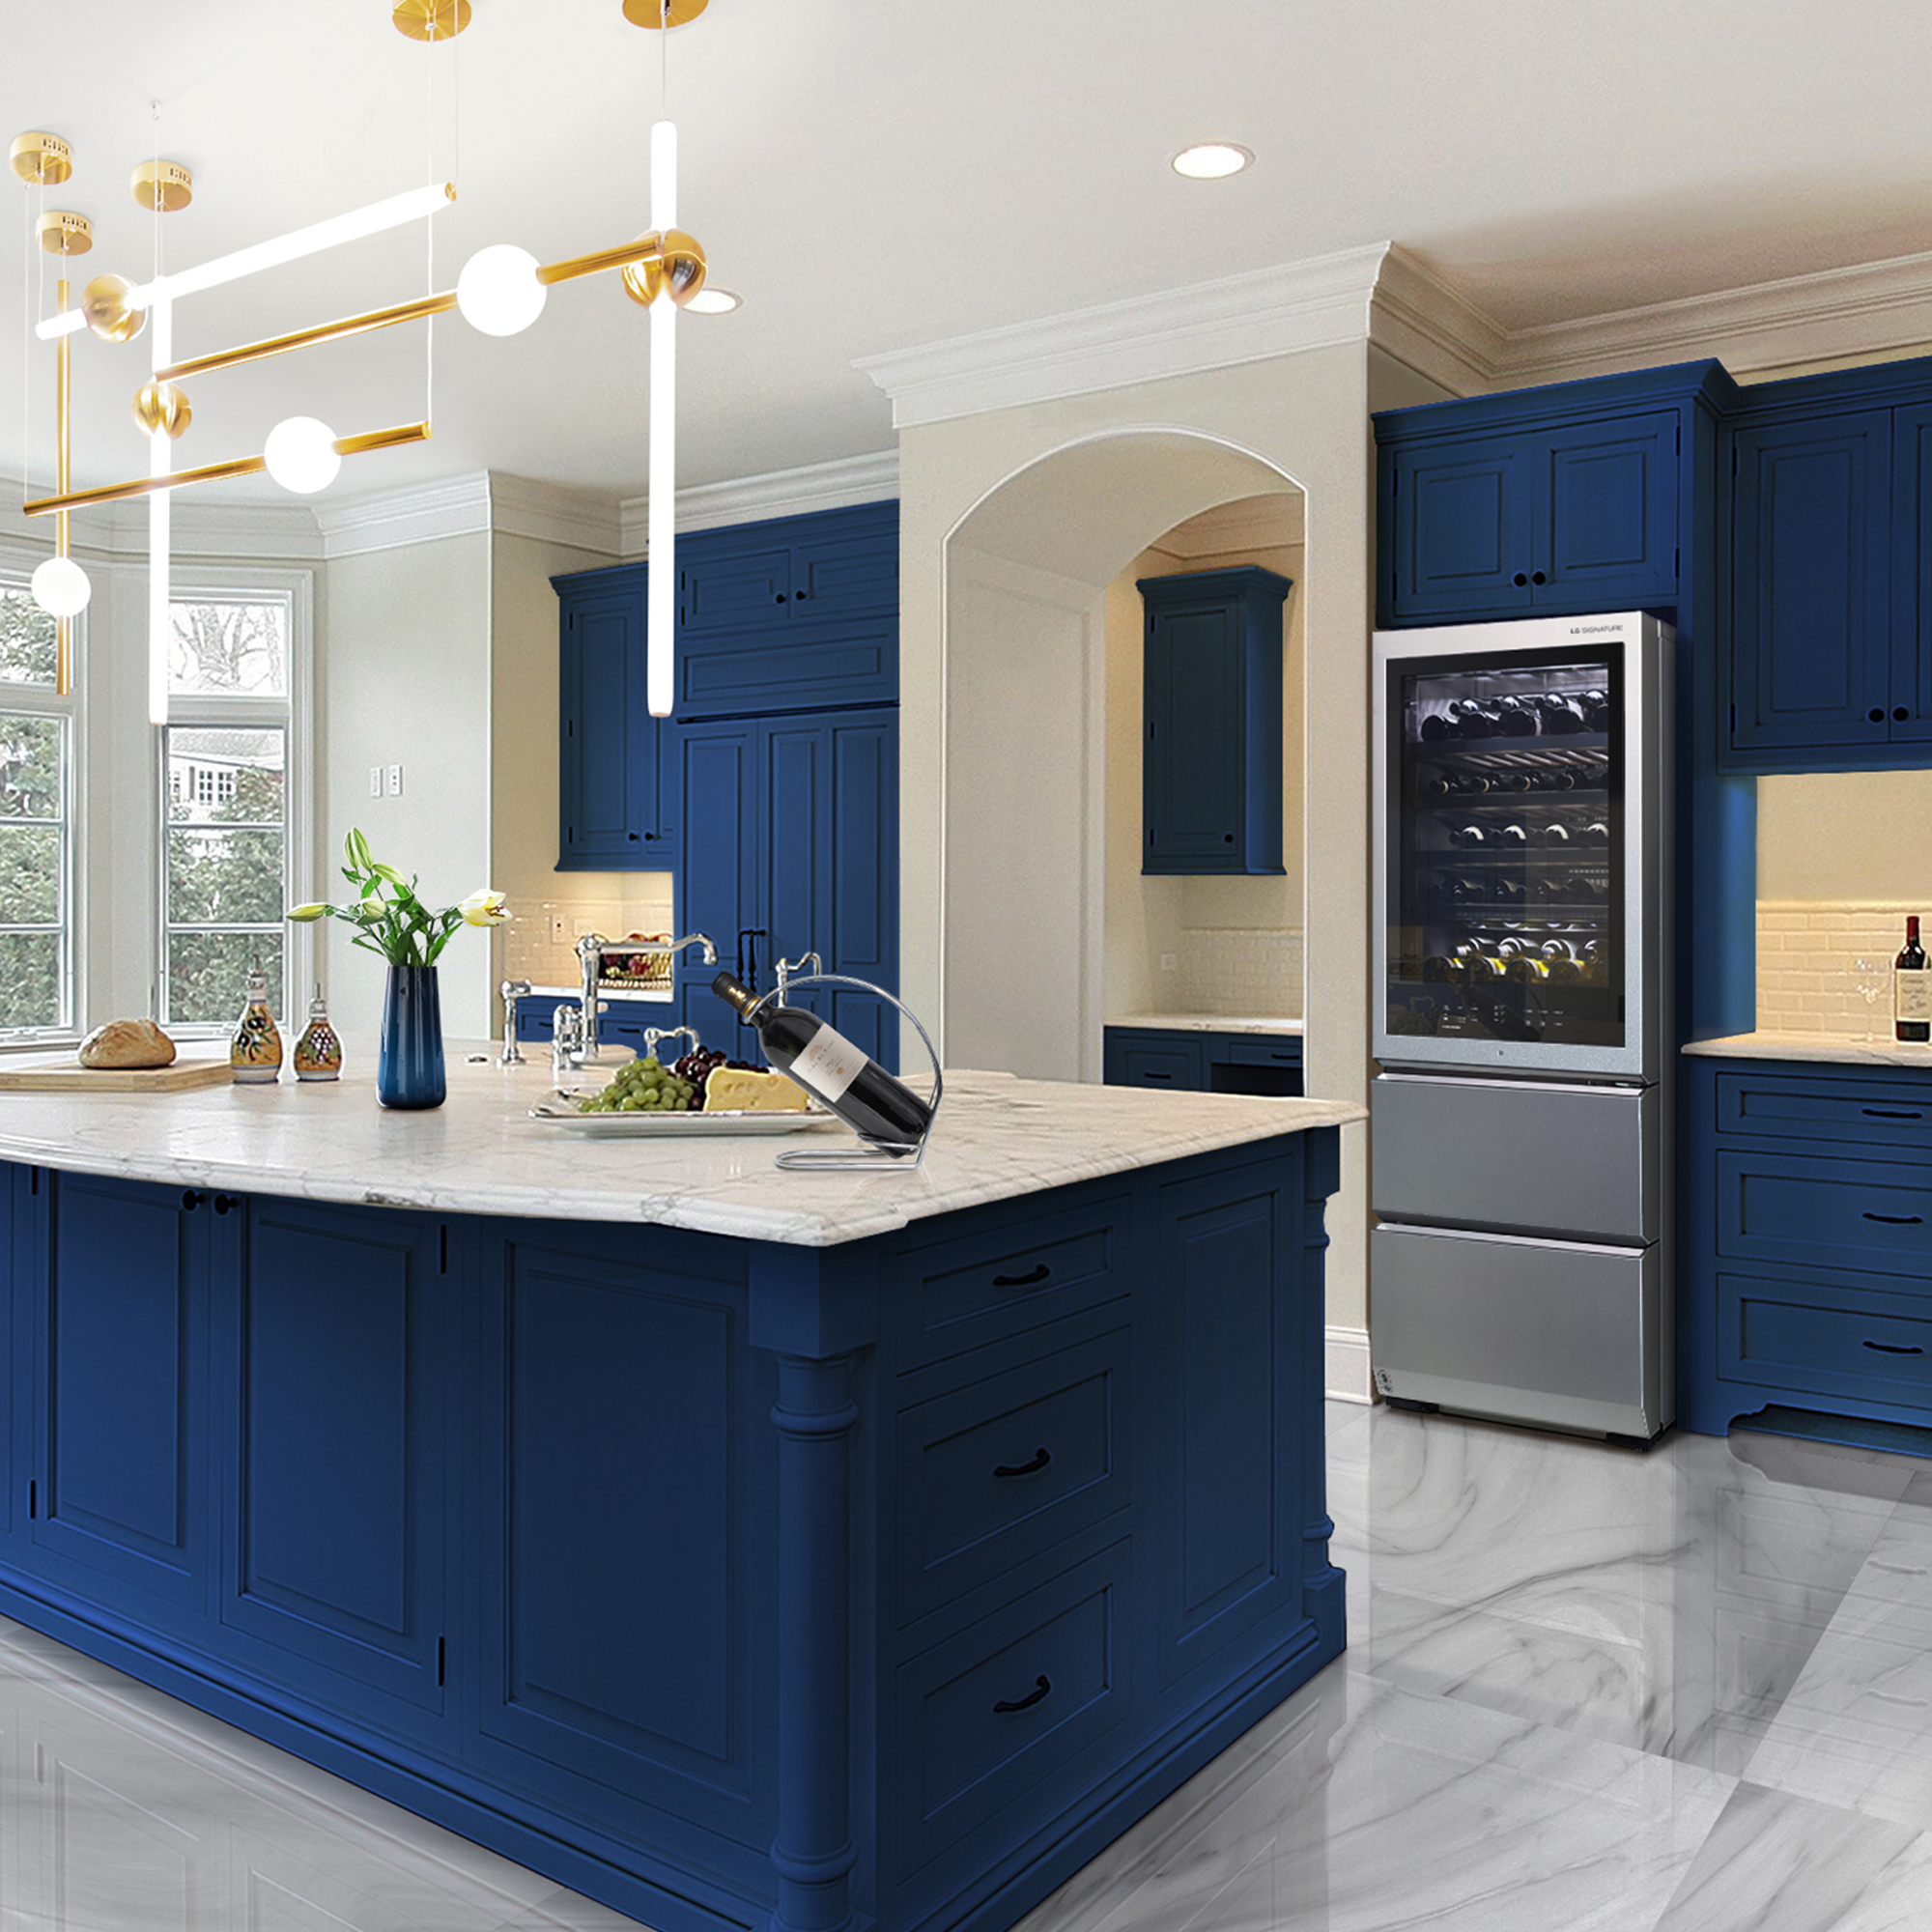 blue kitchen with wine fridge